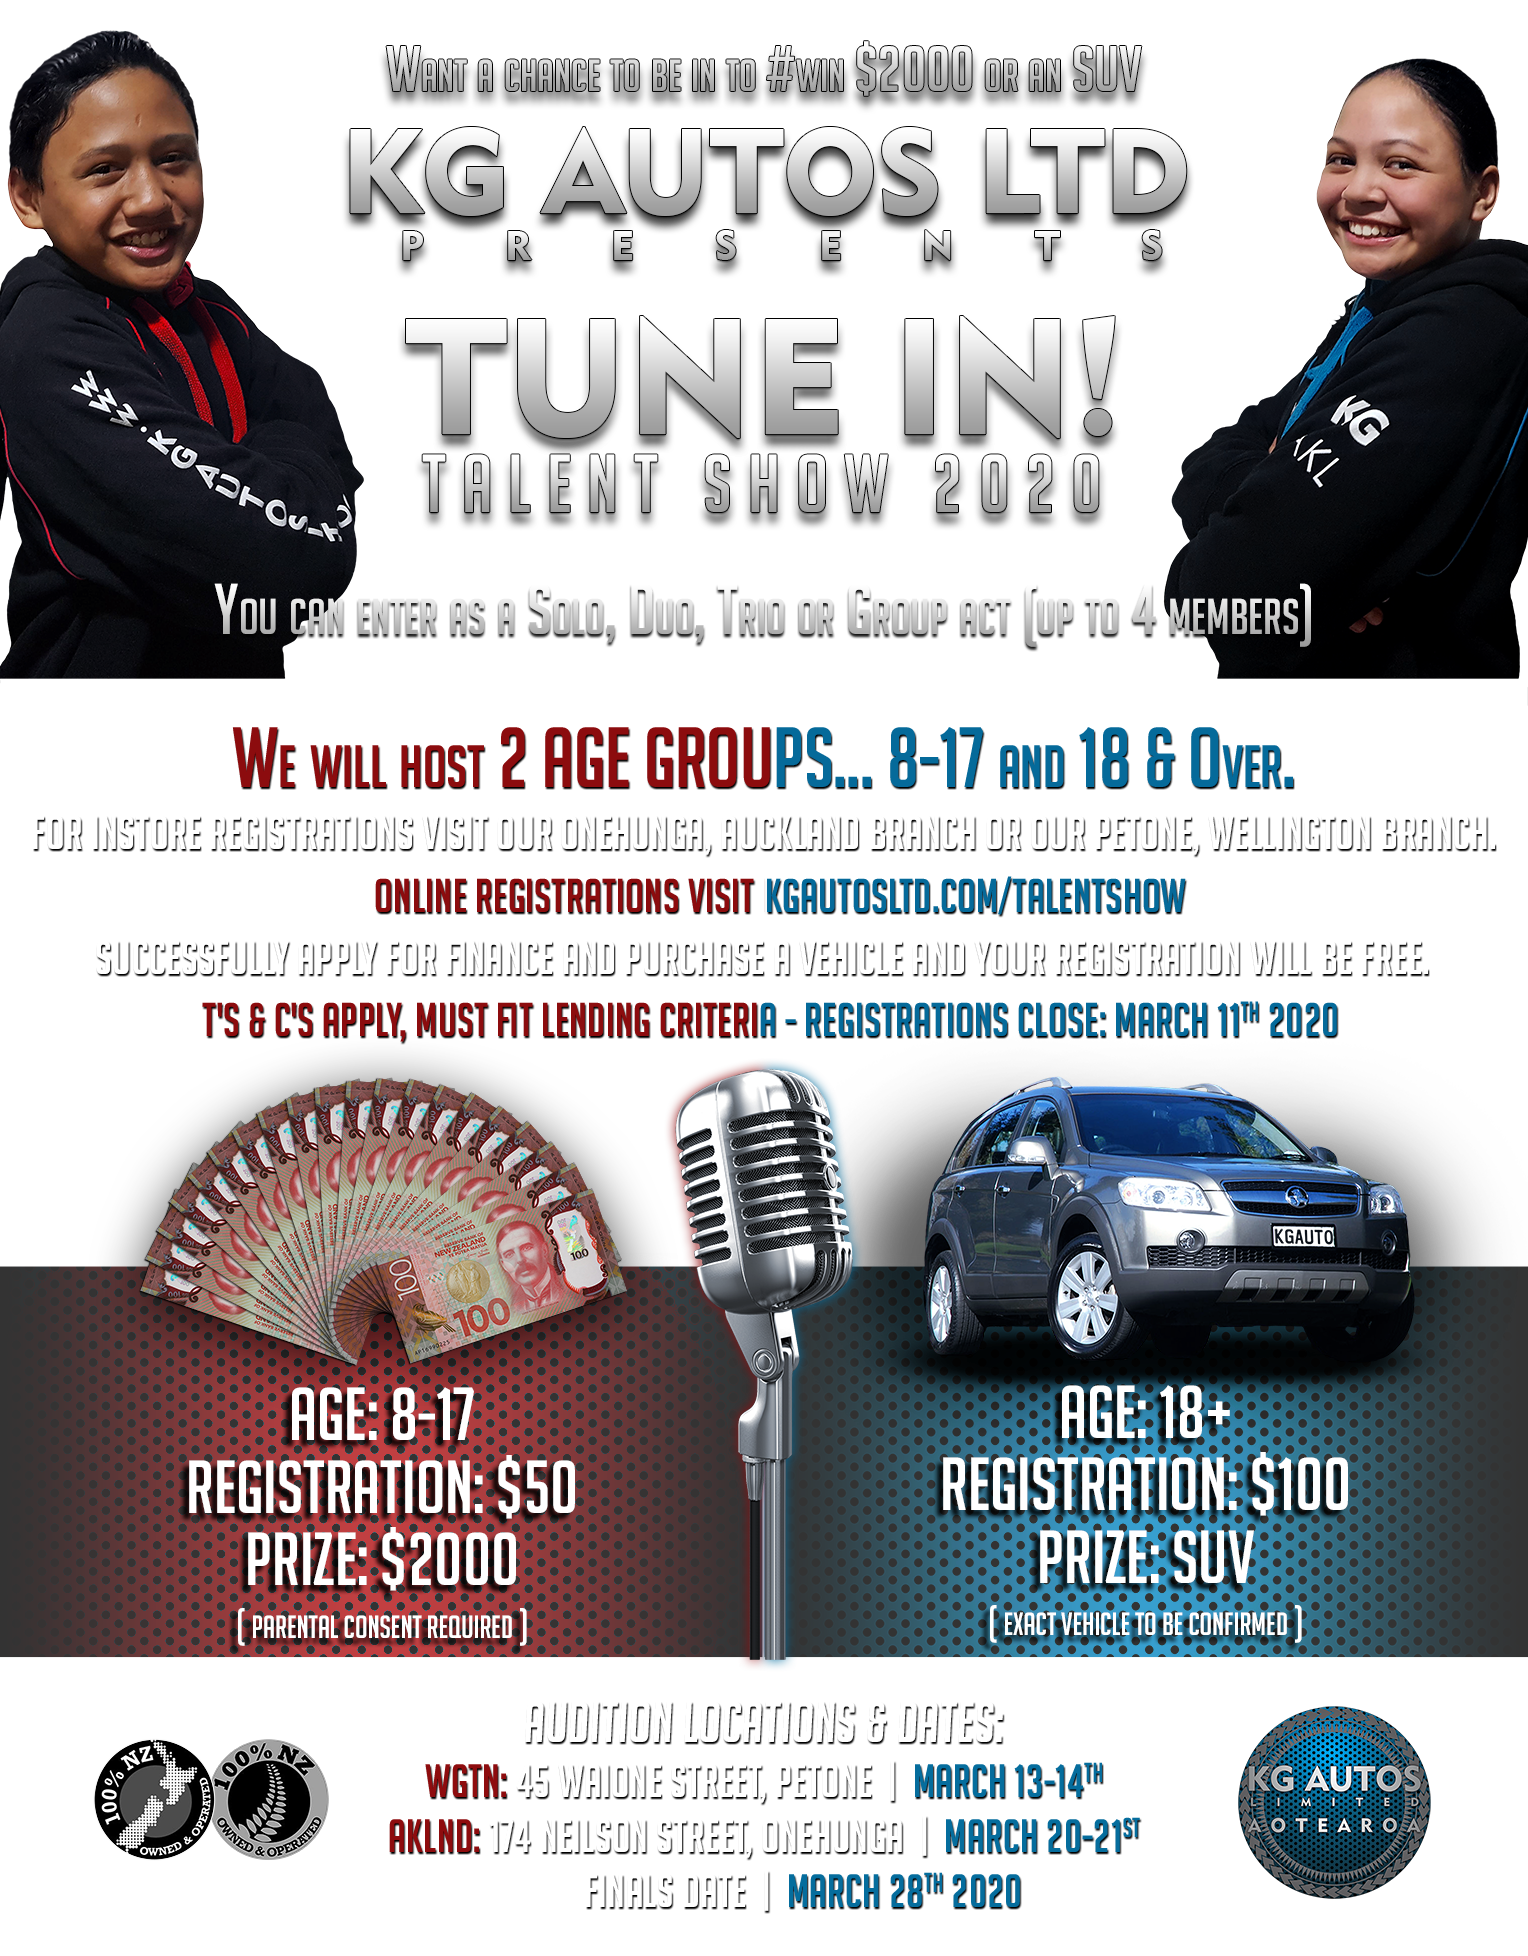 KG Autos - TUNE IN - TALENT SHOW - PROMOTION